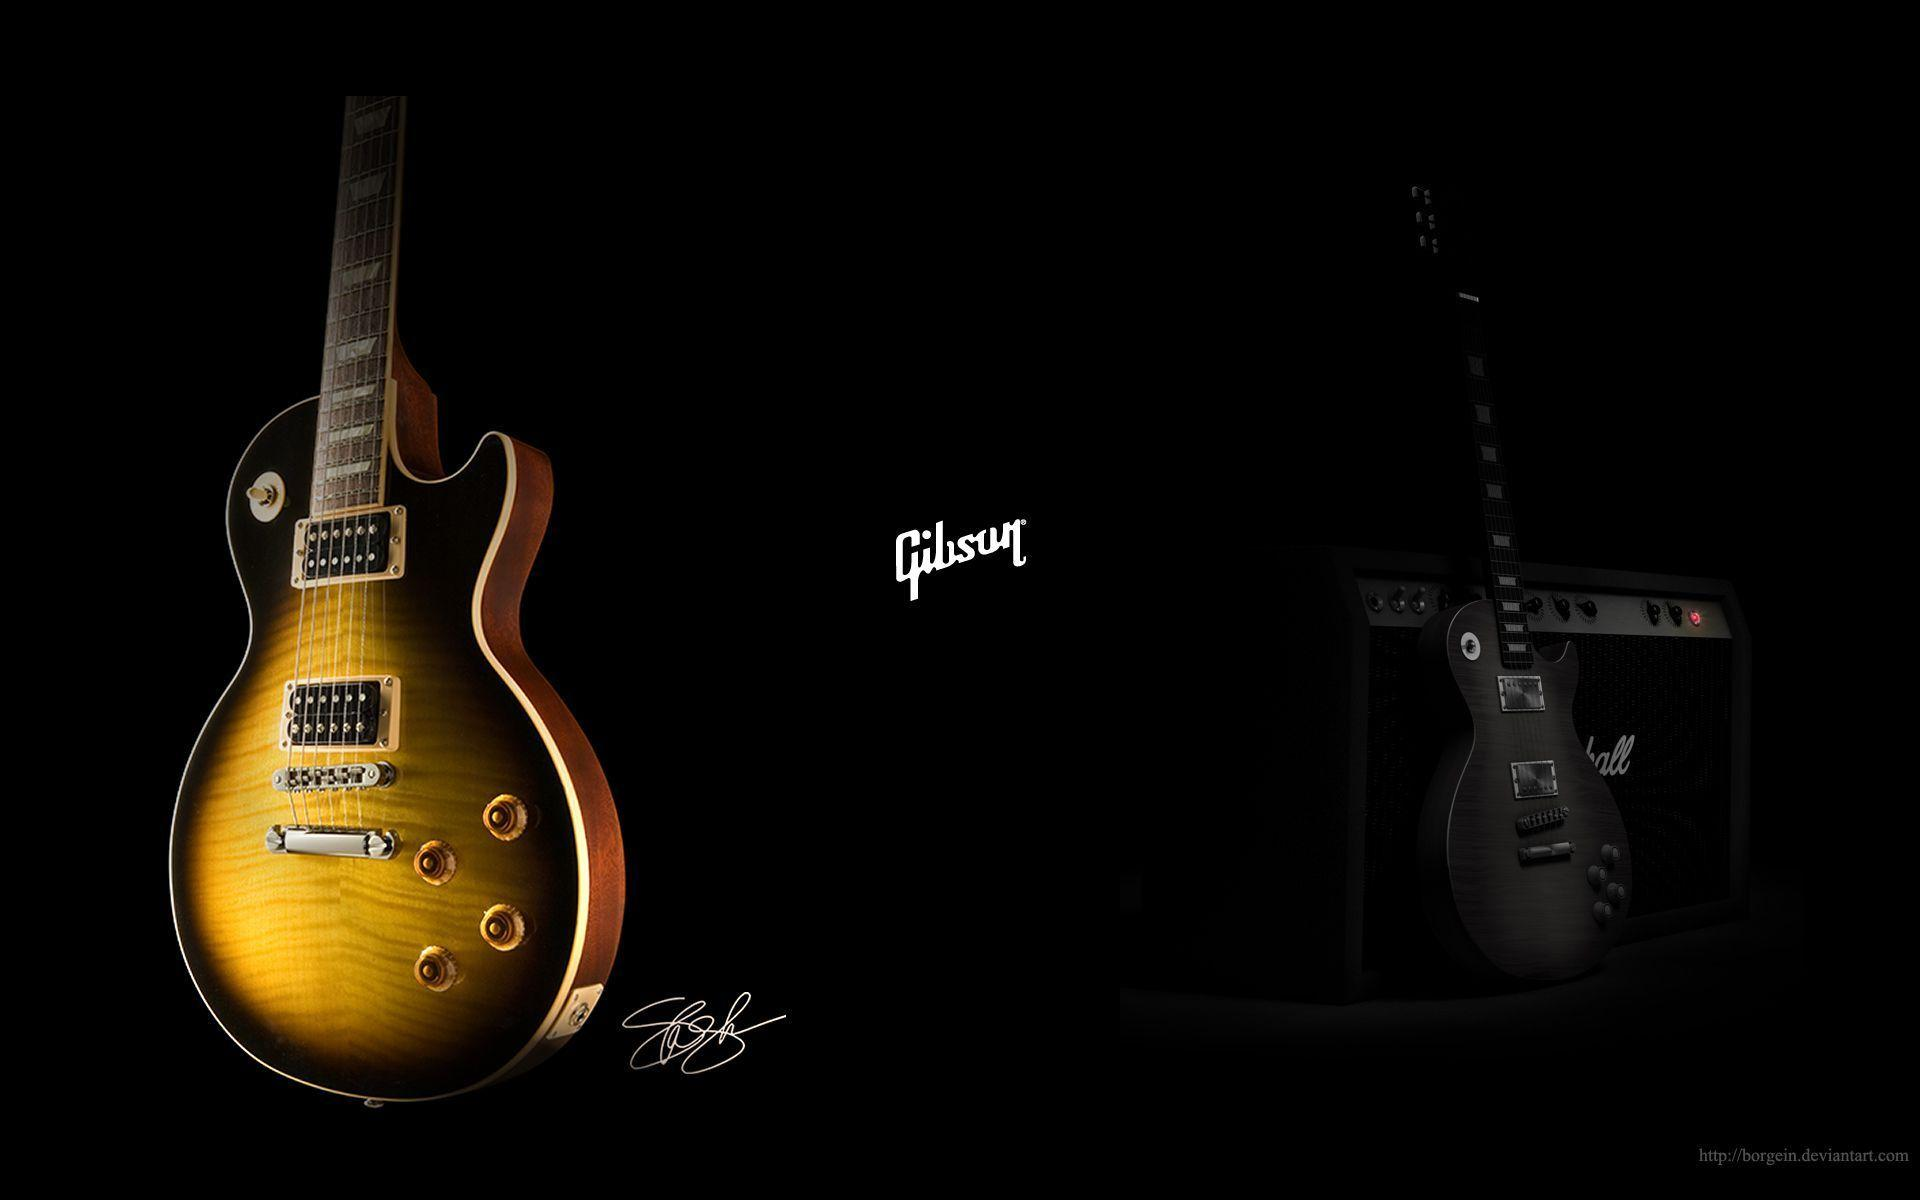 Guitar Image Hd Hd Backgrounds Wallpapers 20 HD Wallpapers